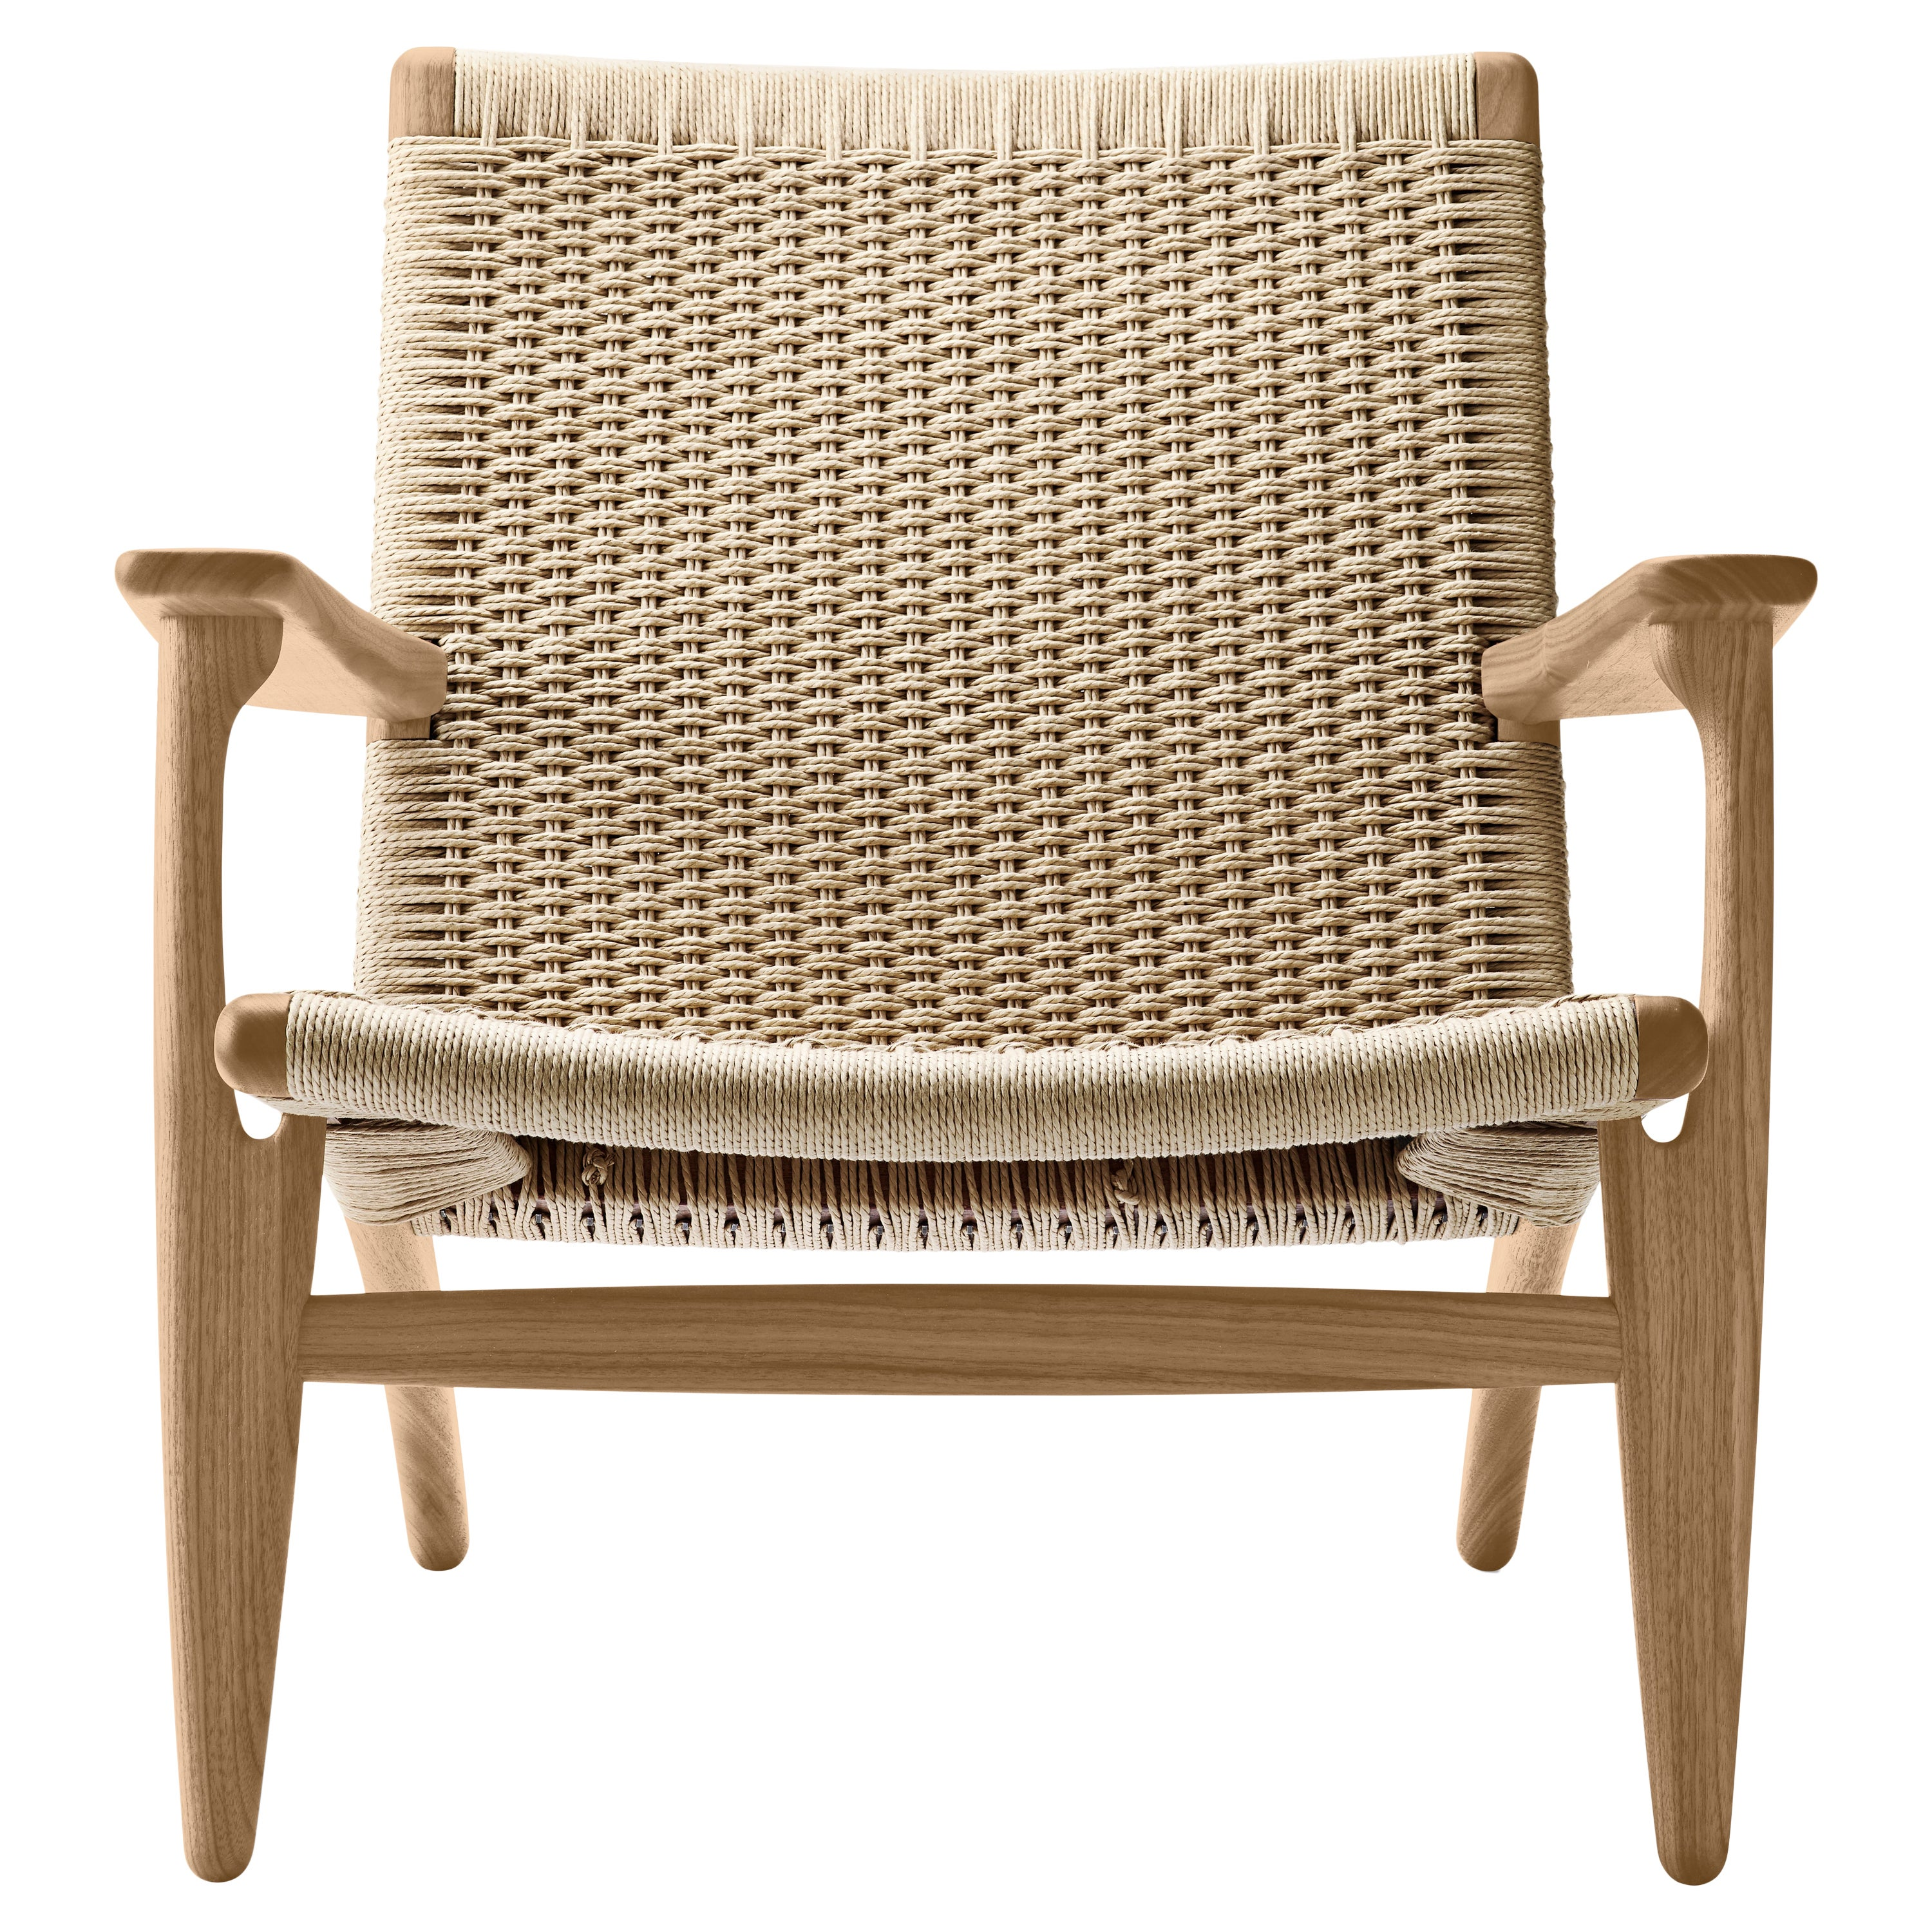 CH25 Easy Lounge Chair with Natural Papercord Seat by Hans J. Wegner